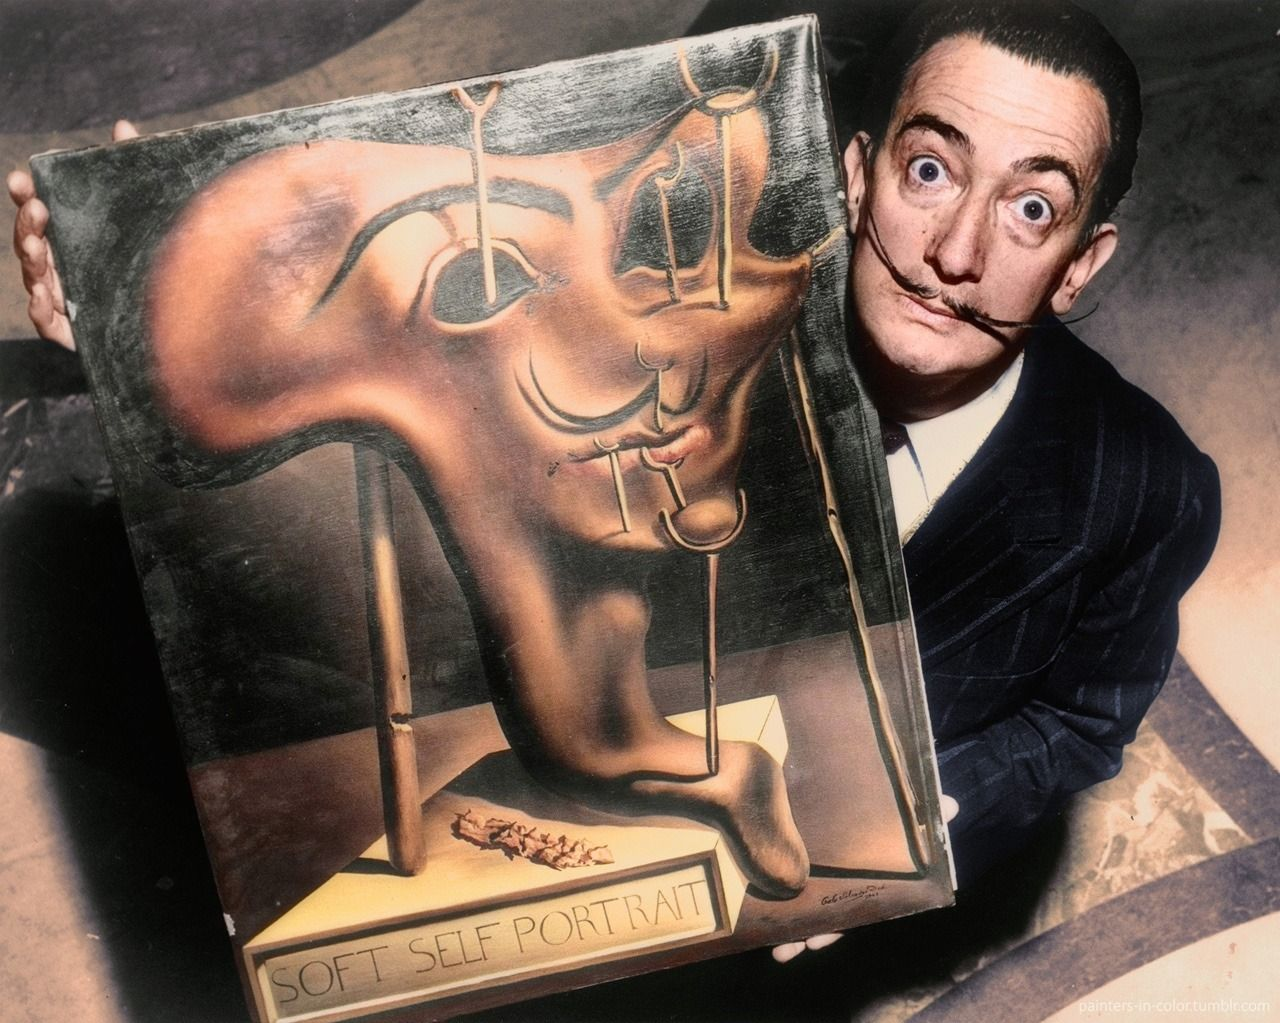 Salvador Dali - with his Soft Self-Portrait with Fried Bacon ...